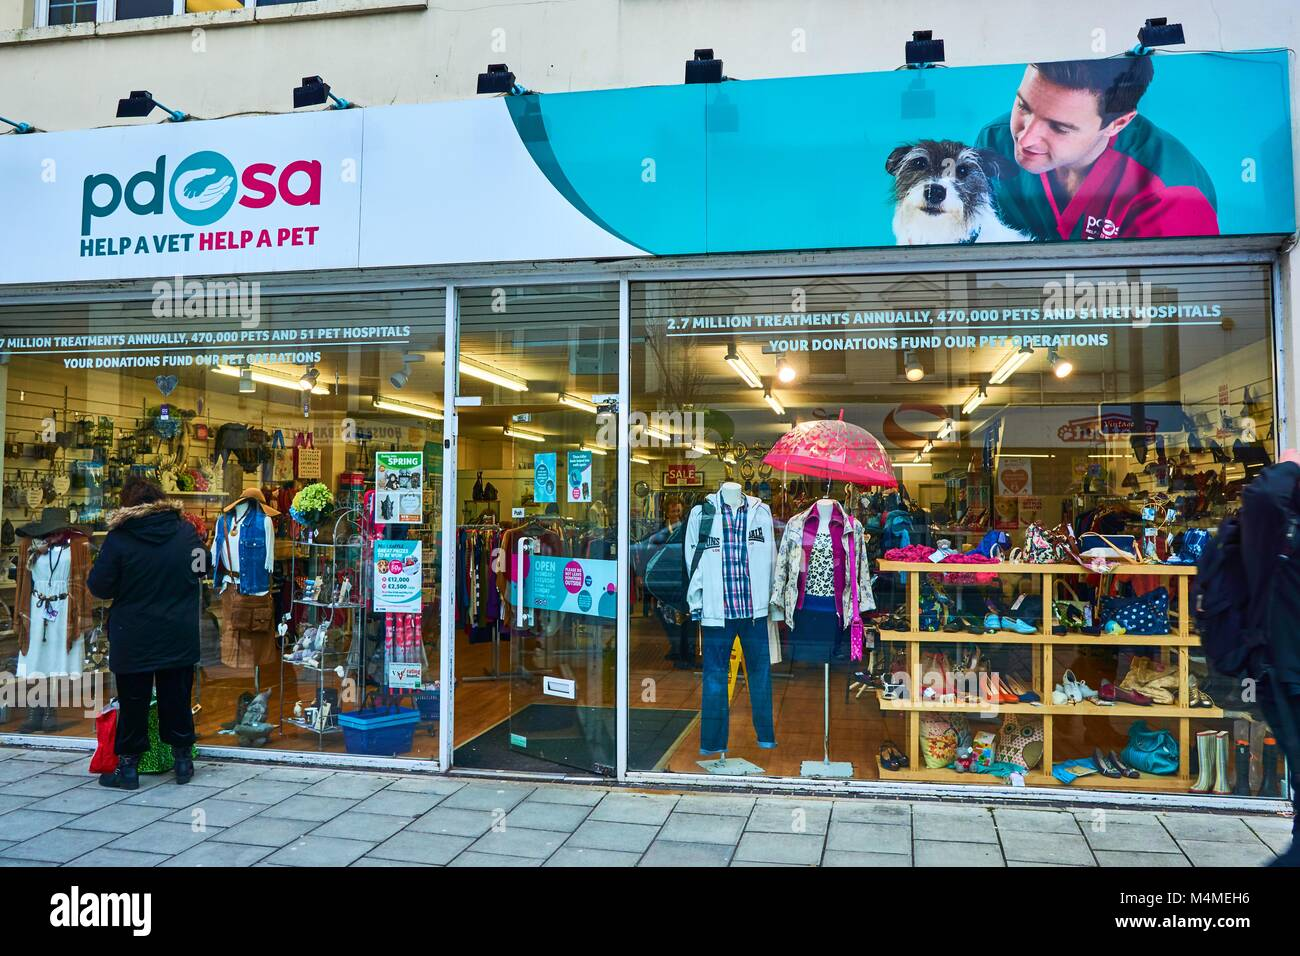 PDSA charity shop in Brighton, England Helps pets receive the care they need - Stock Image